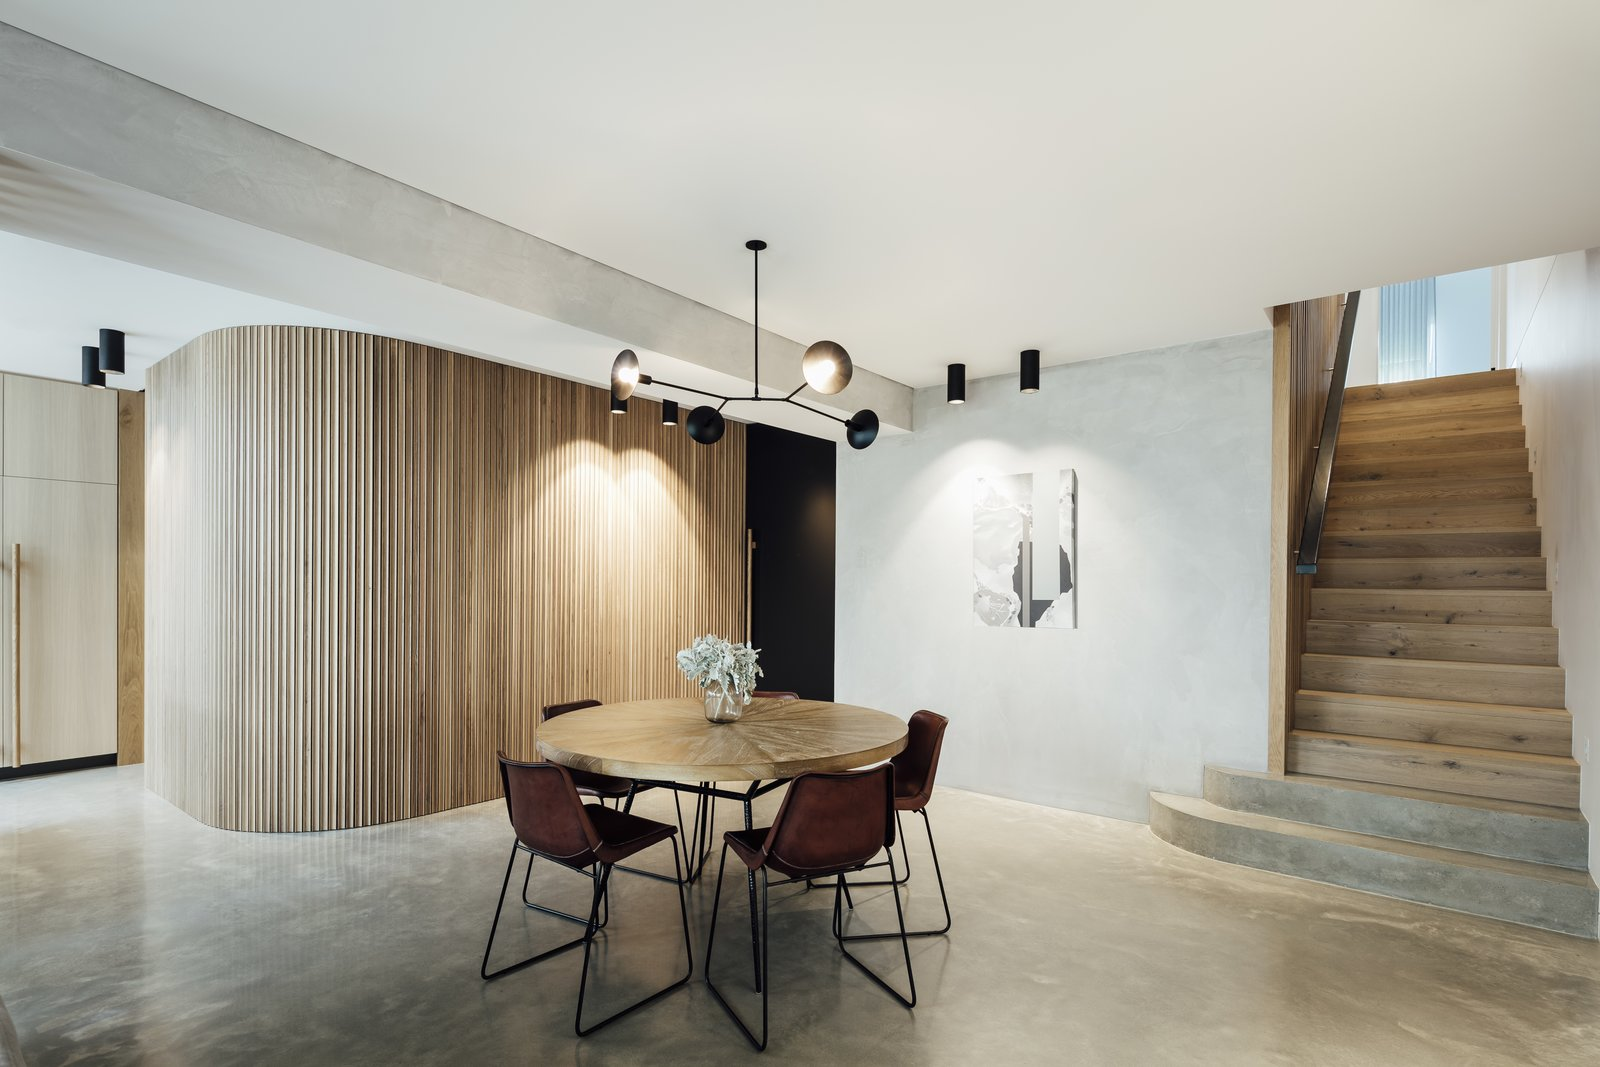 Triple Fronted Revival dining area